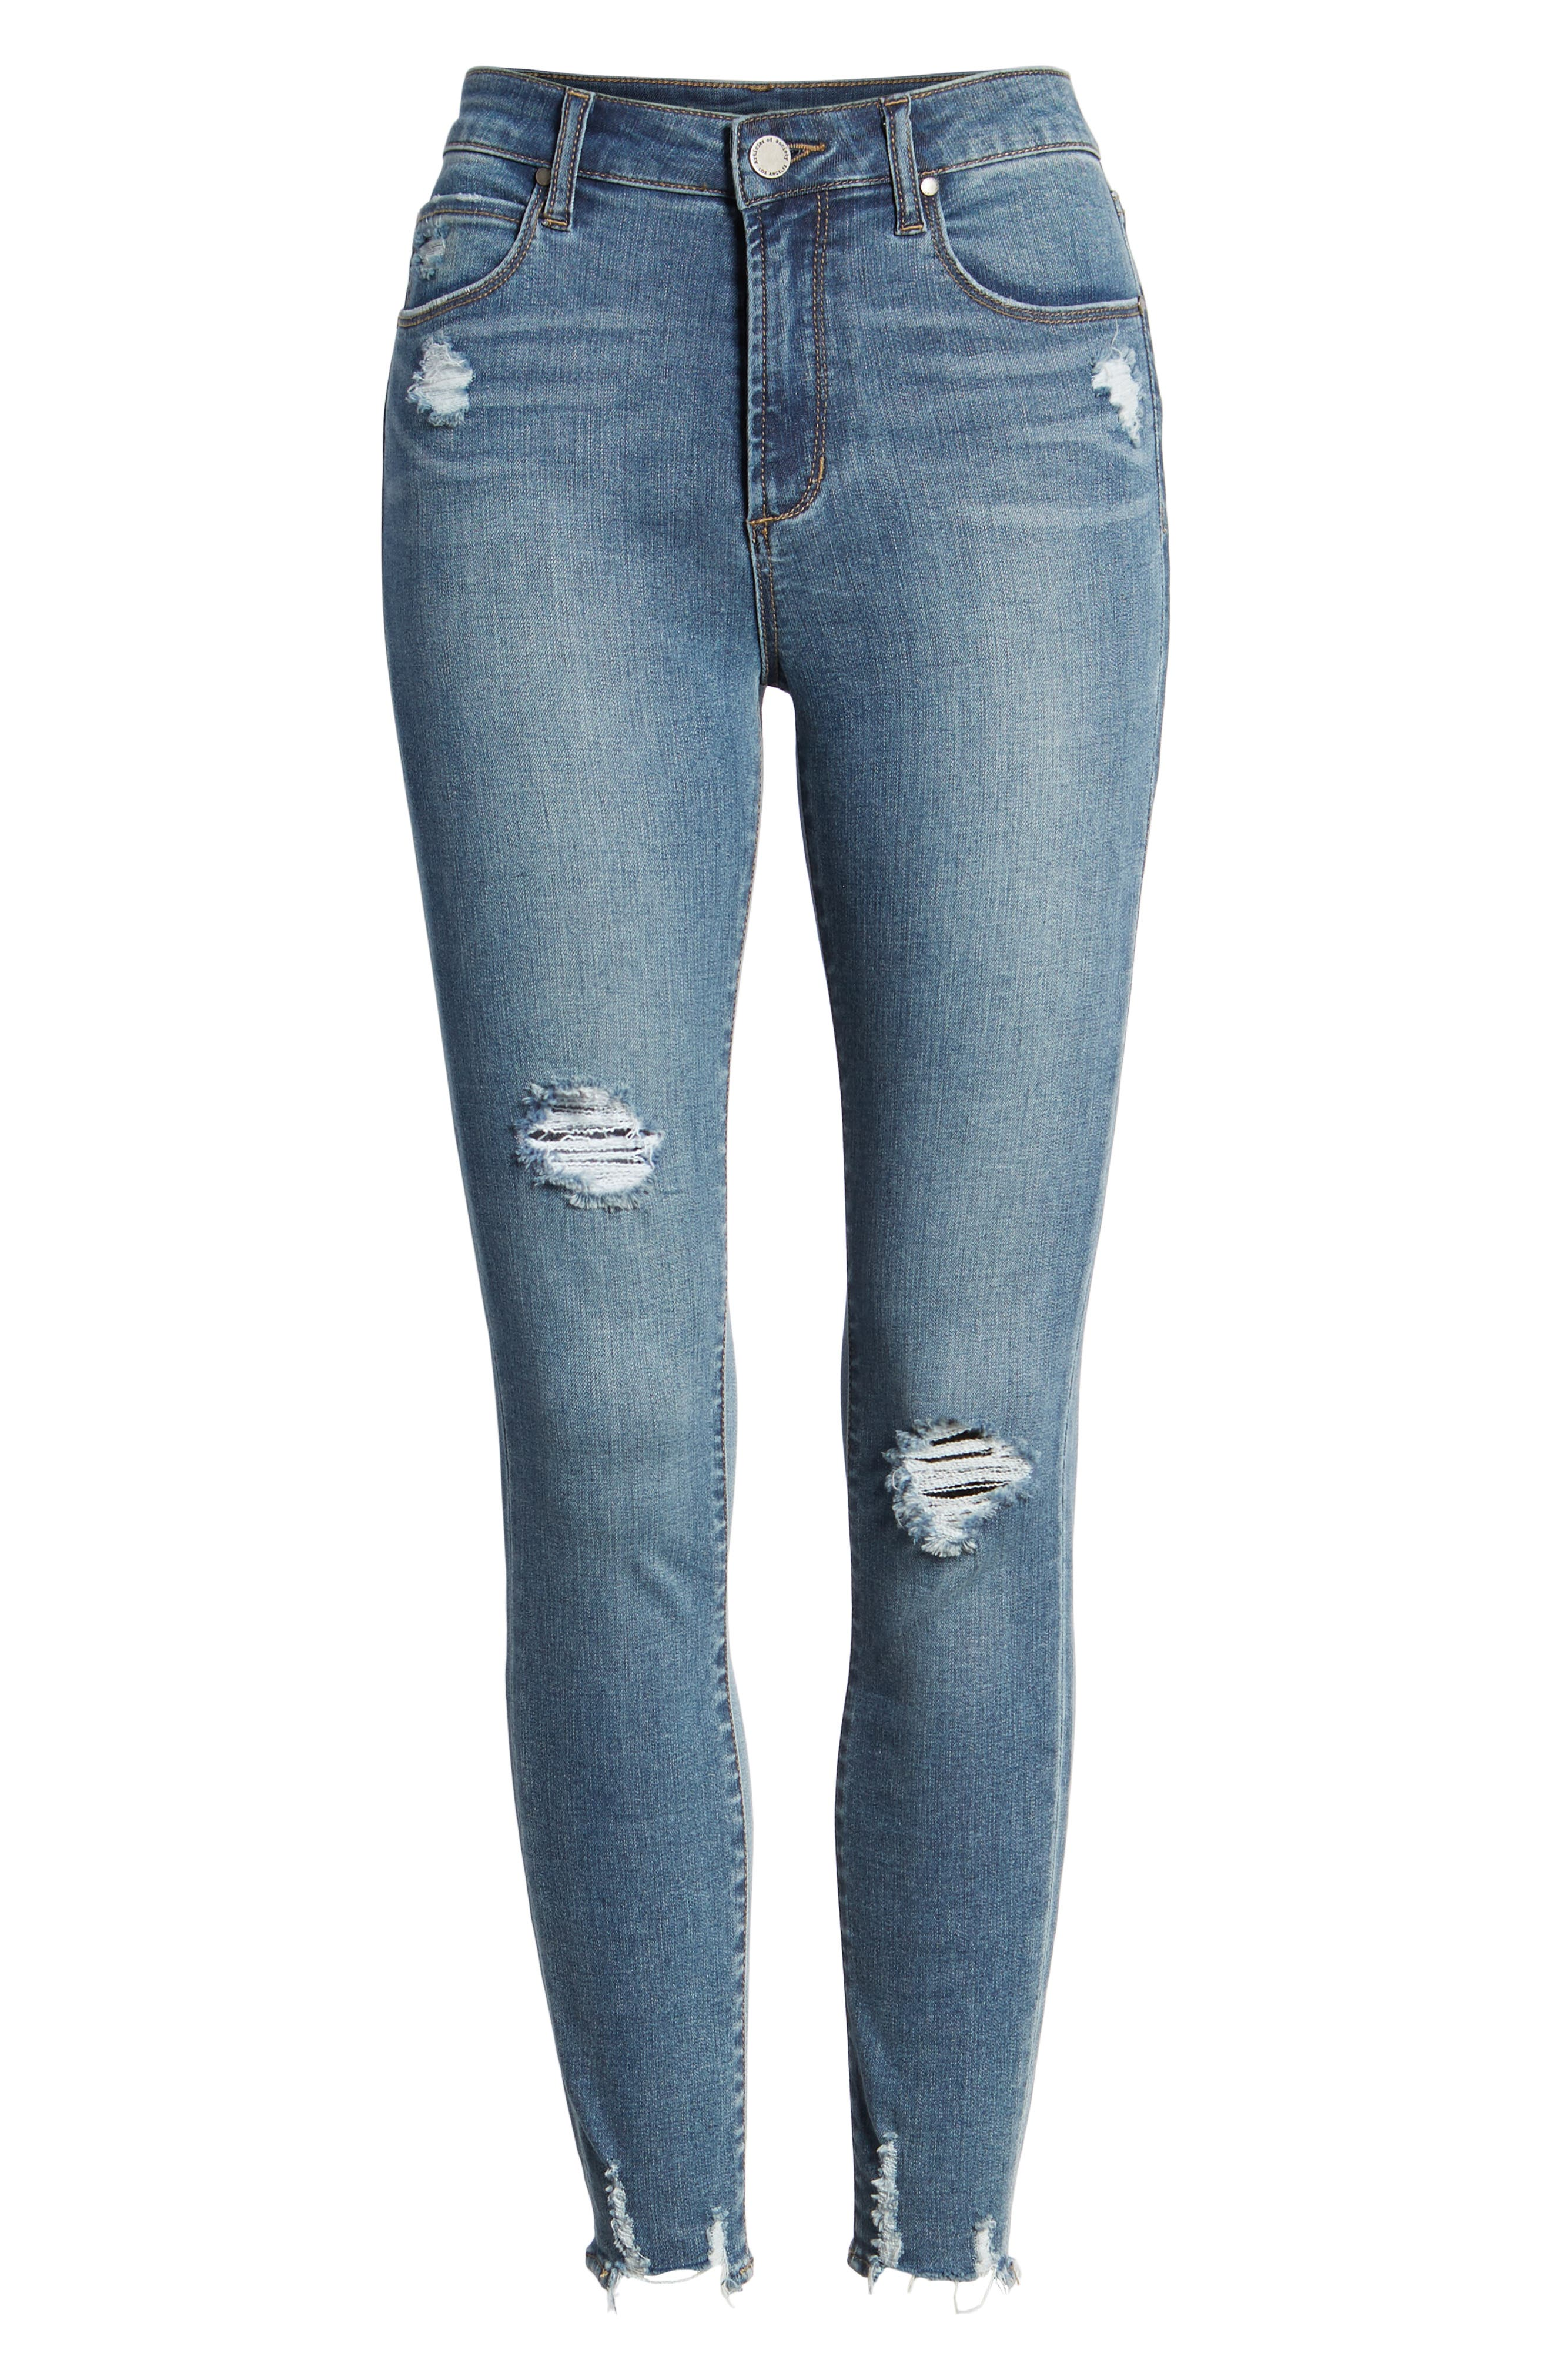 Heather High Waist Distressed Skinny Jeans,                             Alternate thumbnail 7, color,                             453